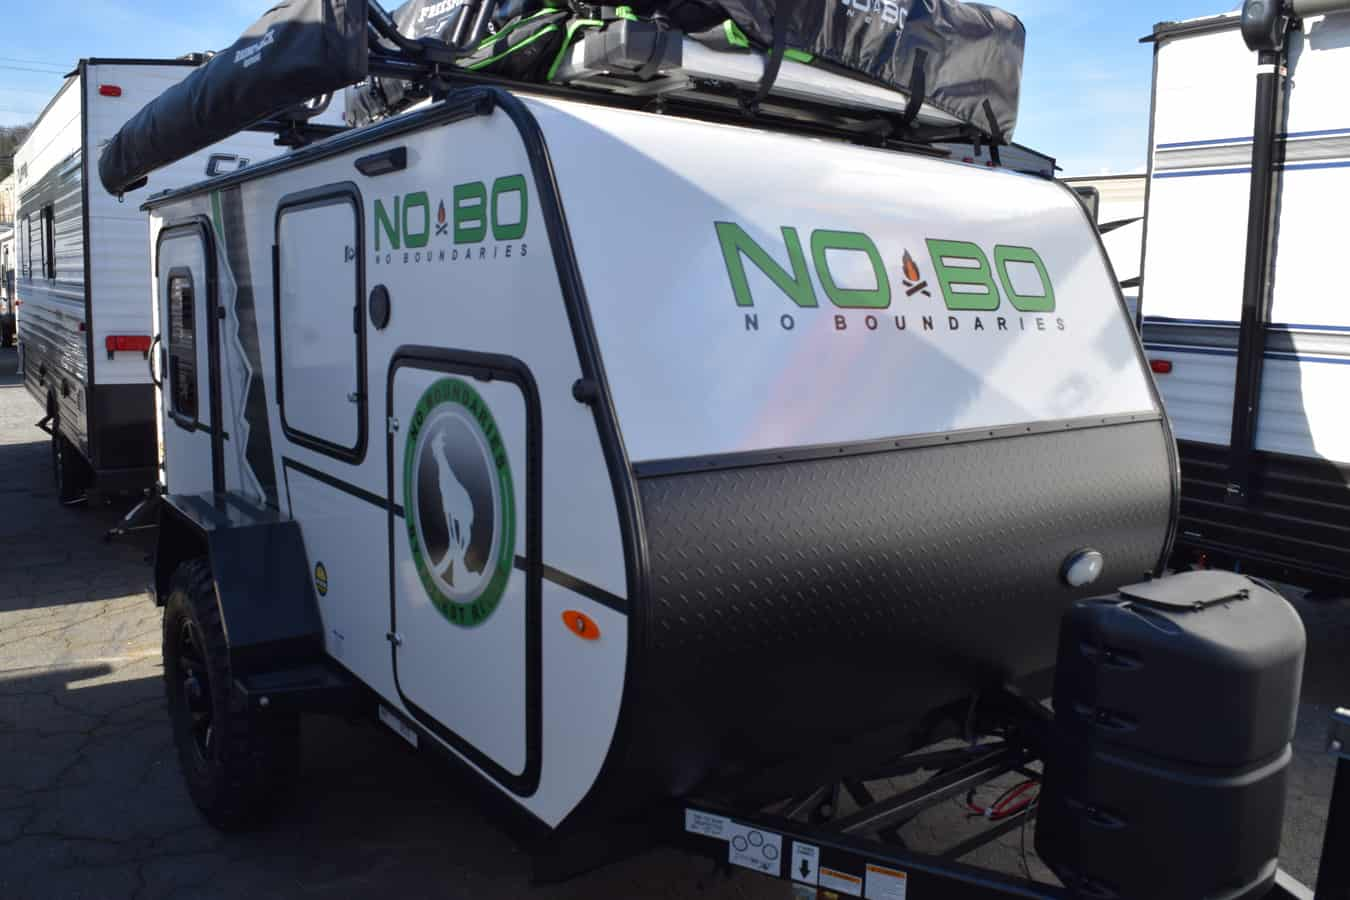 NEW 2019 Forest River NO BOUNDARIES (NOBO) 10.5 - Three Way Campers